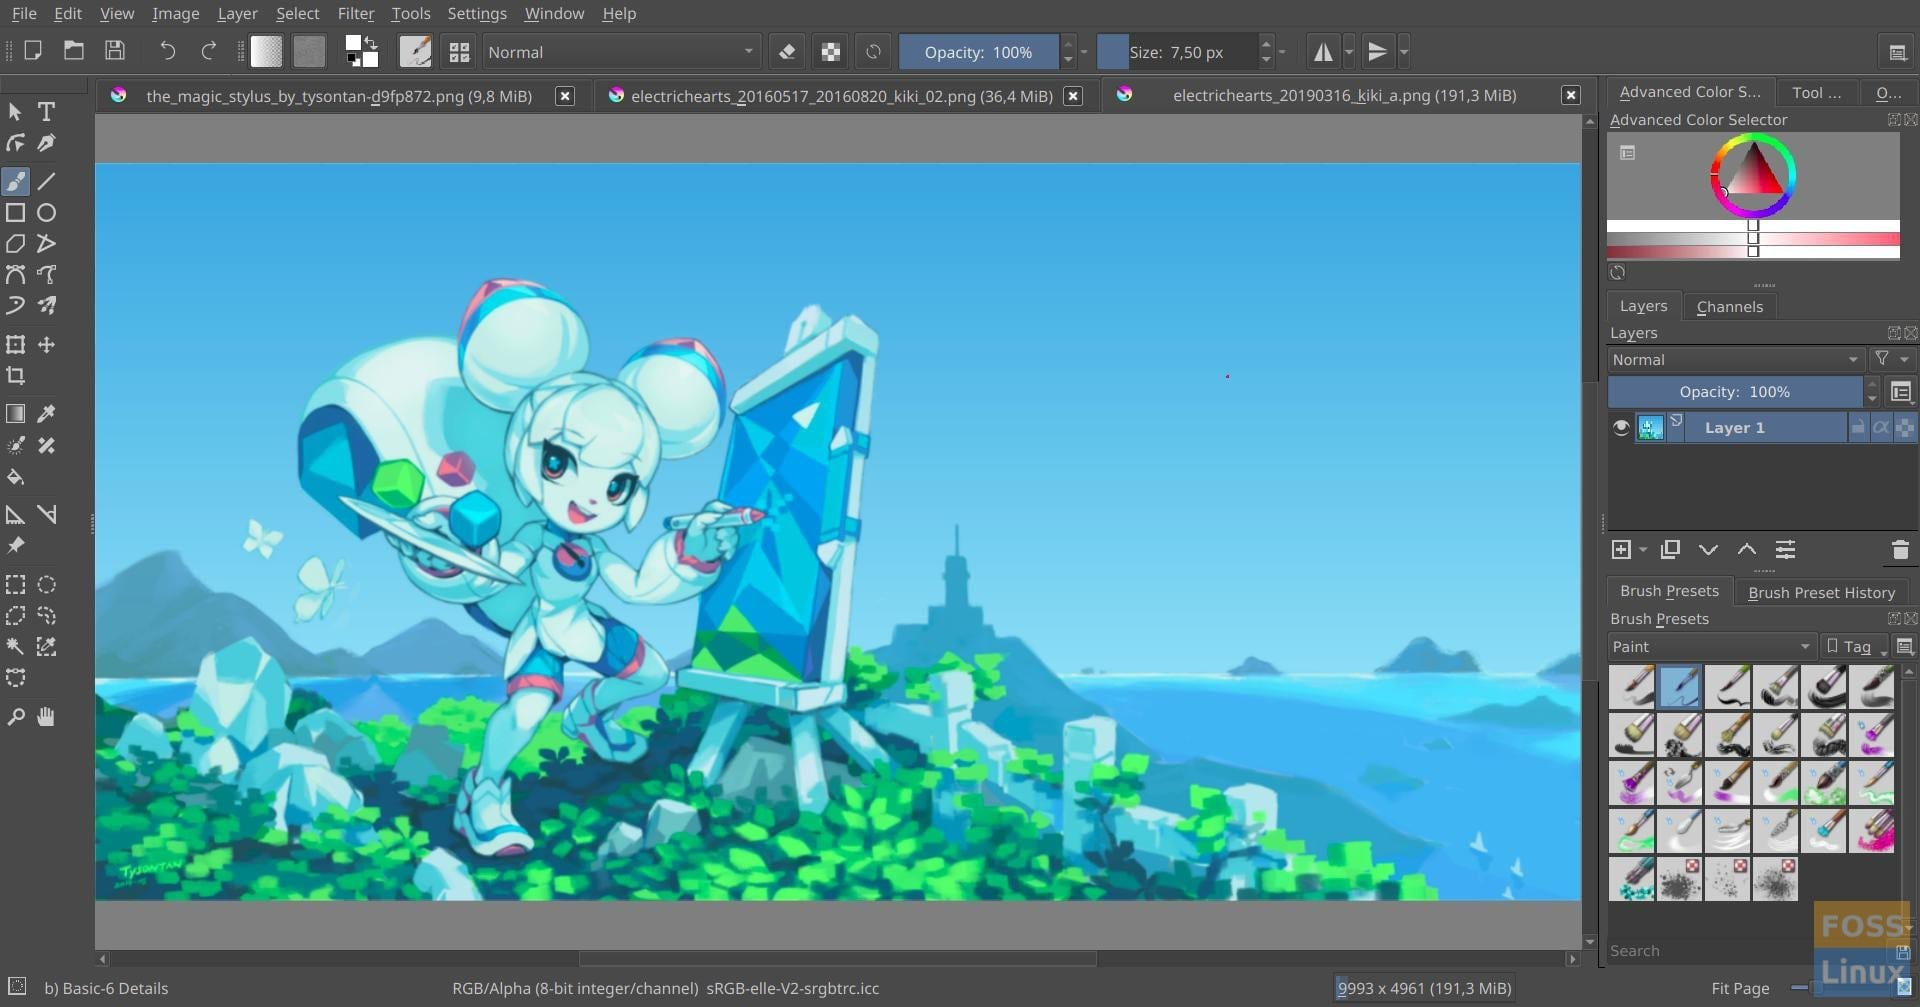 Krita 4 2 released, here are the exciting new features